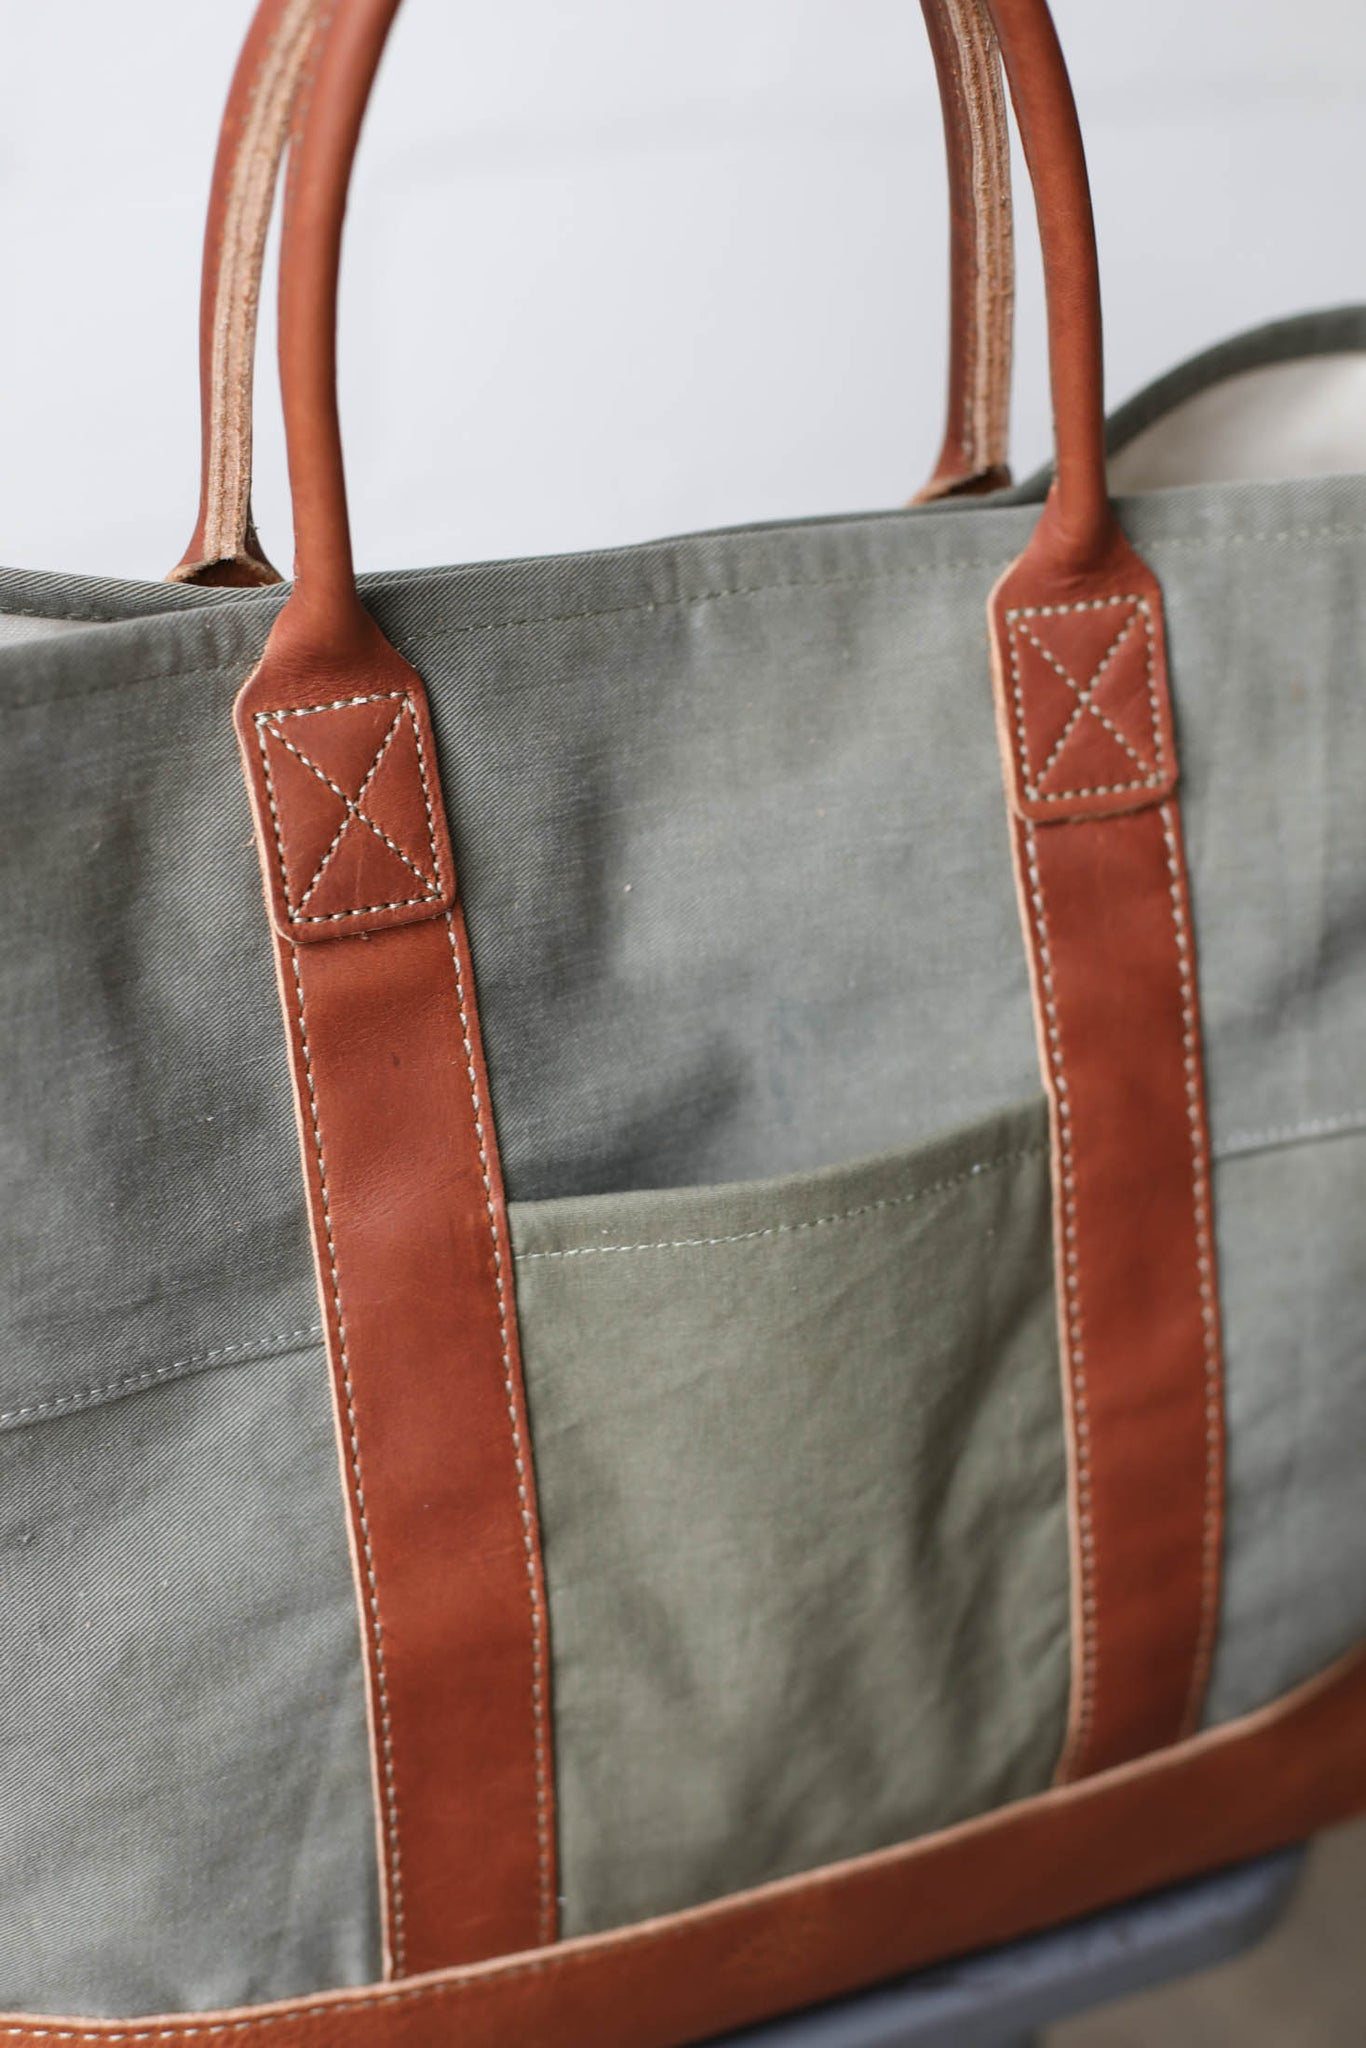 WWII era Salvaged Canvas Tote Bag